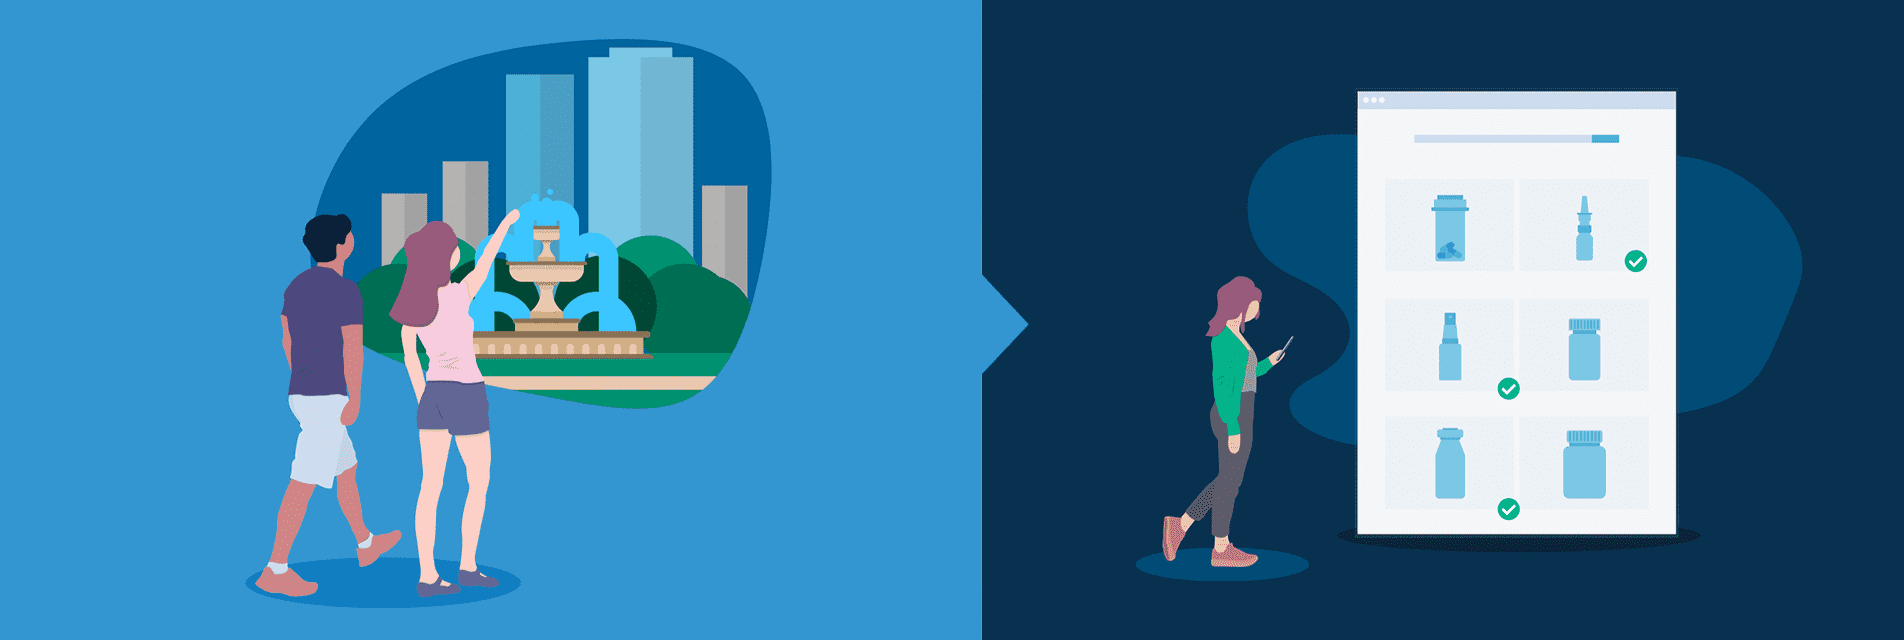 Illustration of people in city